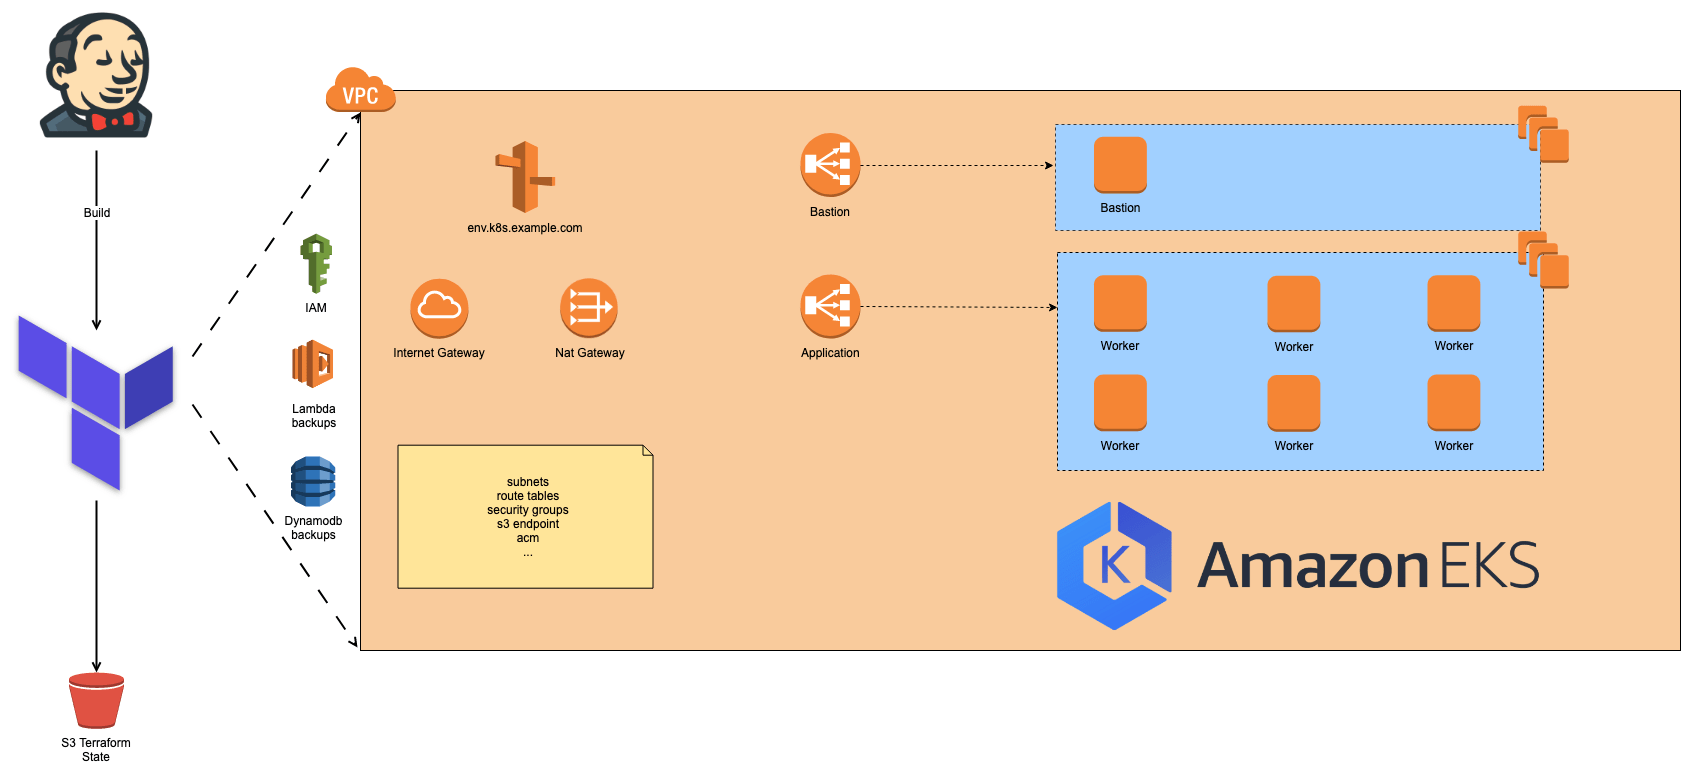 migration to Amazon EKS and the reduction in the number of components running within the Kubernetes cluster